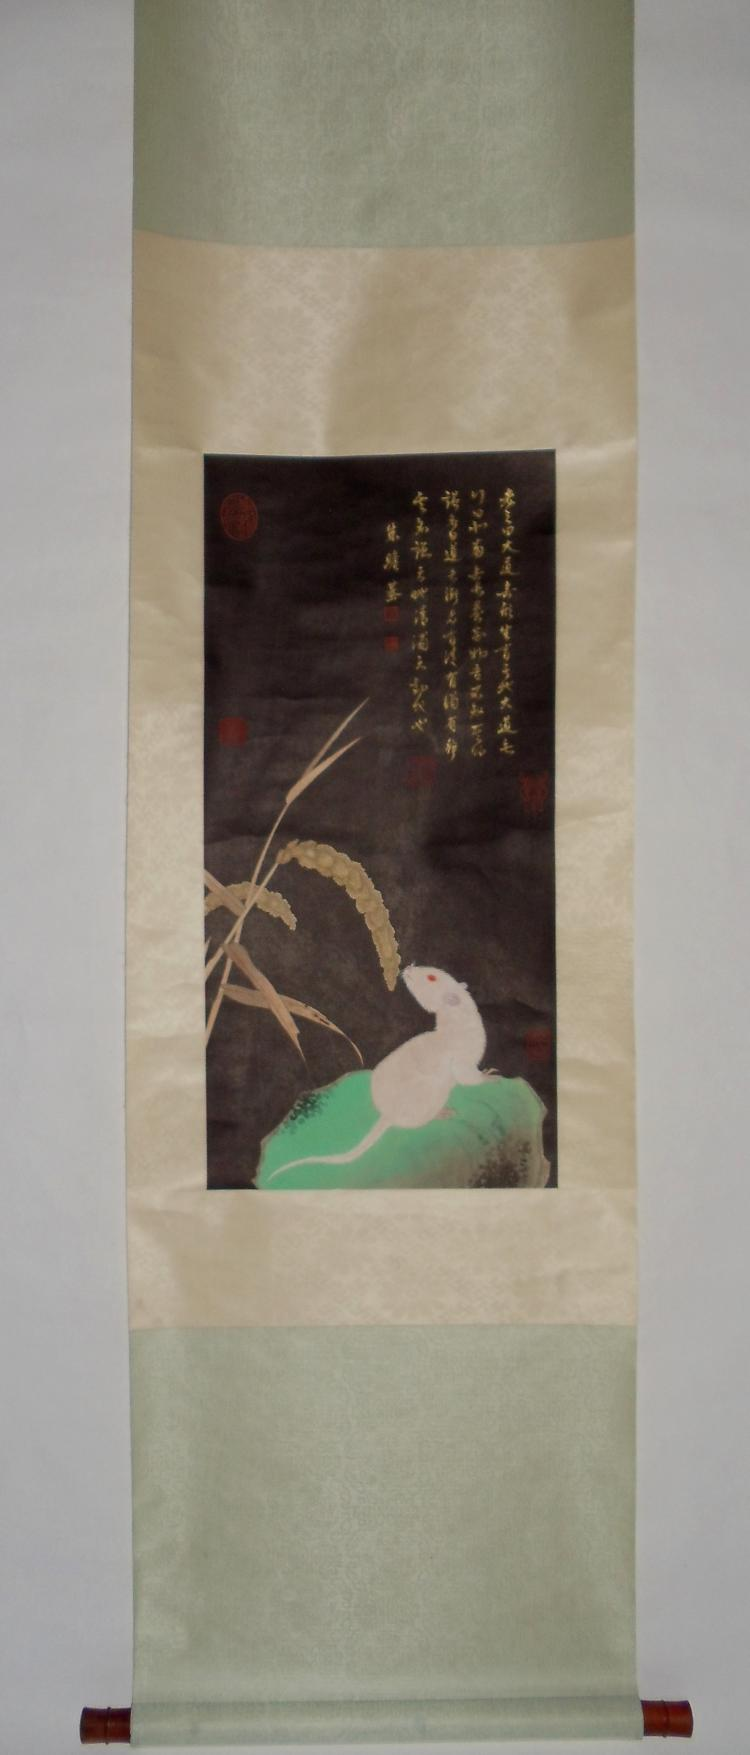 A Cute Red-Eyed White Mouse Attributed to Zhu Zhanji (1399-1435),  Emperor Xuande of Ming Dynasty